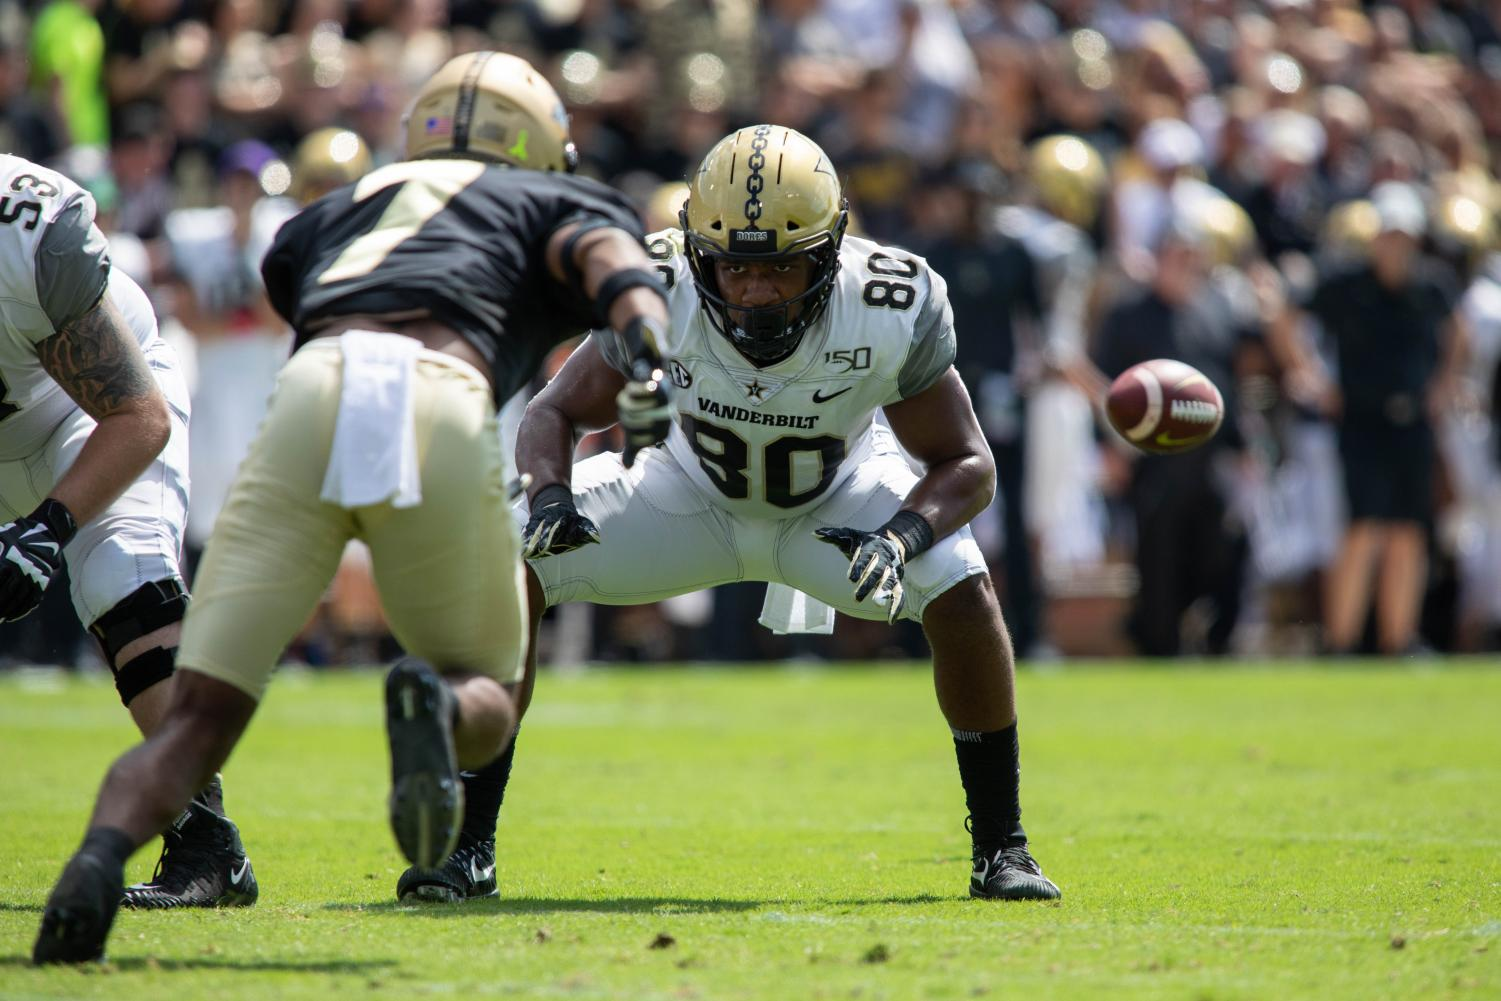 Purdue beats Vandy 42-24 in Indiana on Saturday, Sept. 7. (Photo by Emily Gonçalves)